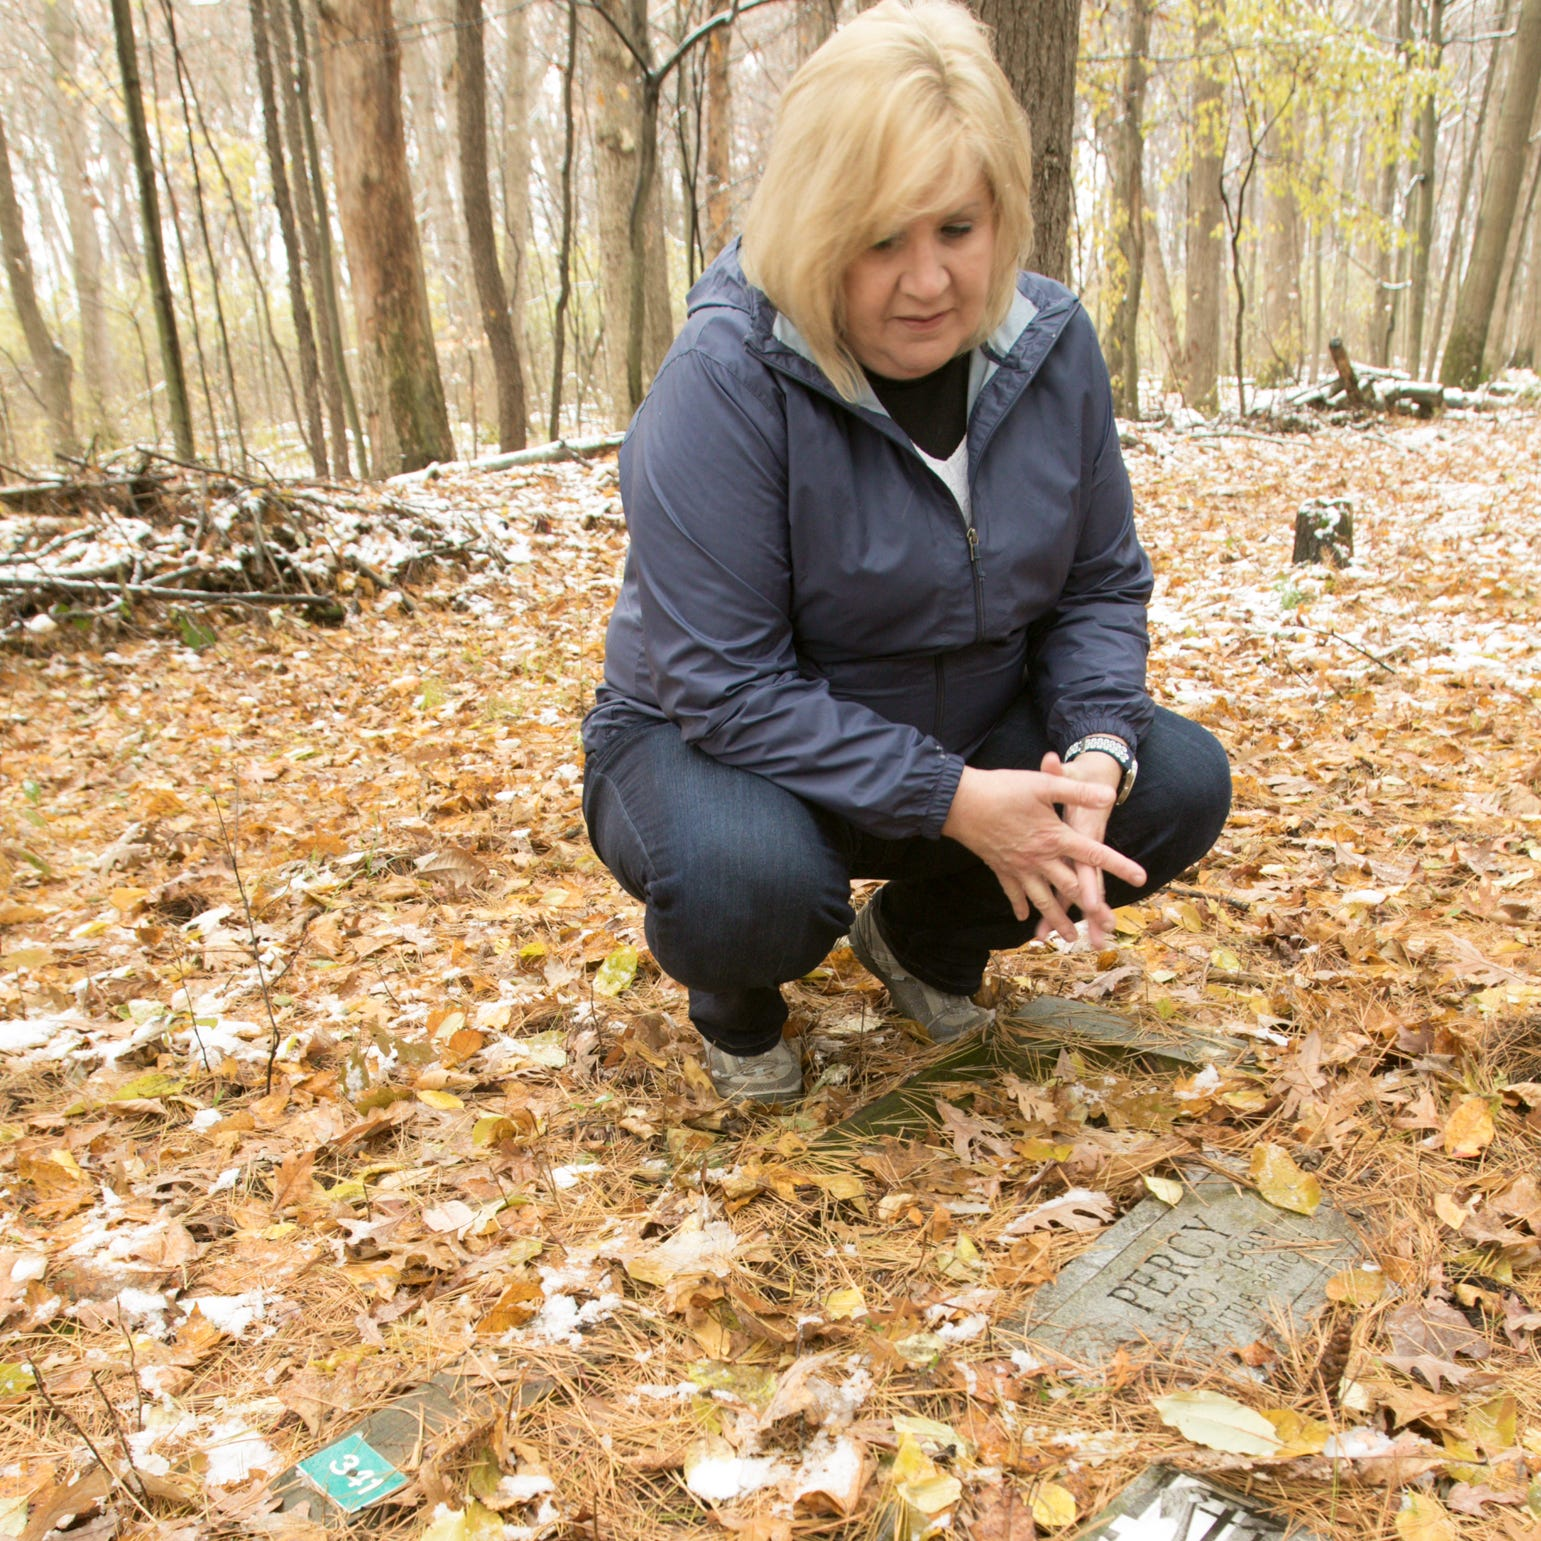 A pet cemetery abruptly closed in Genoa Township. But what happens to the 74,000 remains?